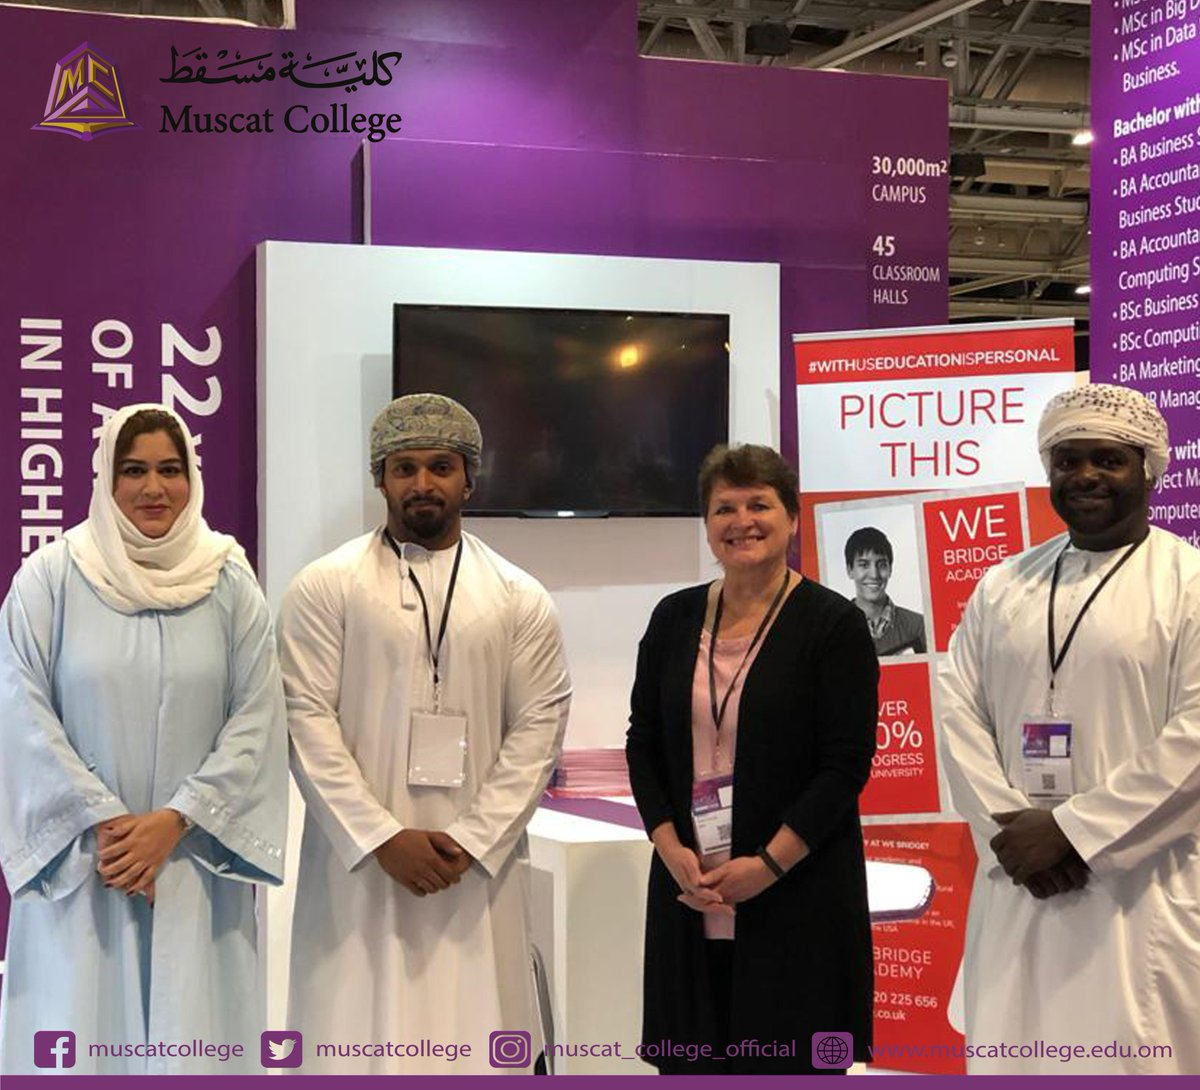 Muscat College Oman A Twitter Muscat College Participate In Ghedex2019 Exhibition Which Inaugurated By H E Dr Abdullah Al Sarmi Undersecretary Of Ministry Of Higher Education And Continues Till Tuesday 16th Of April